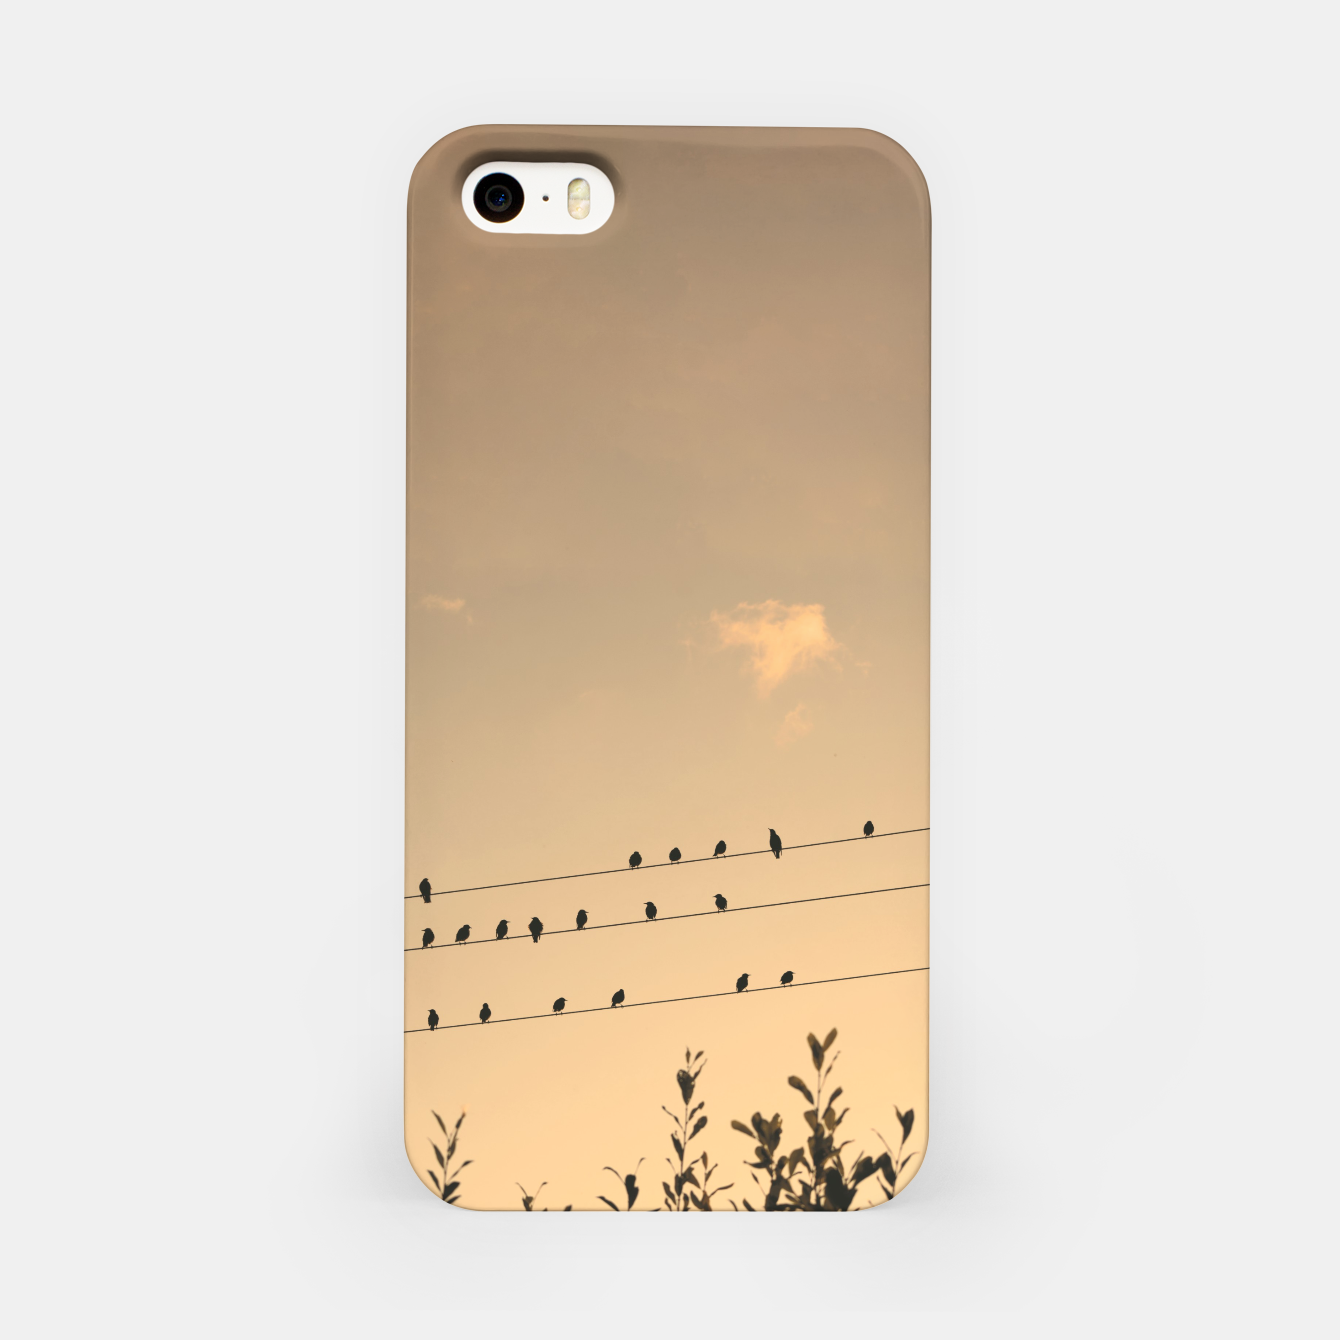 Foto BIrds on wires iPhone Case - Live Heroes